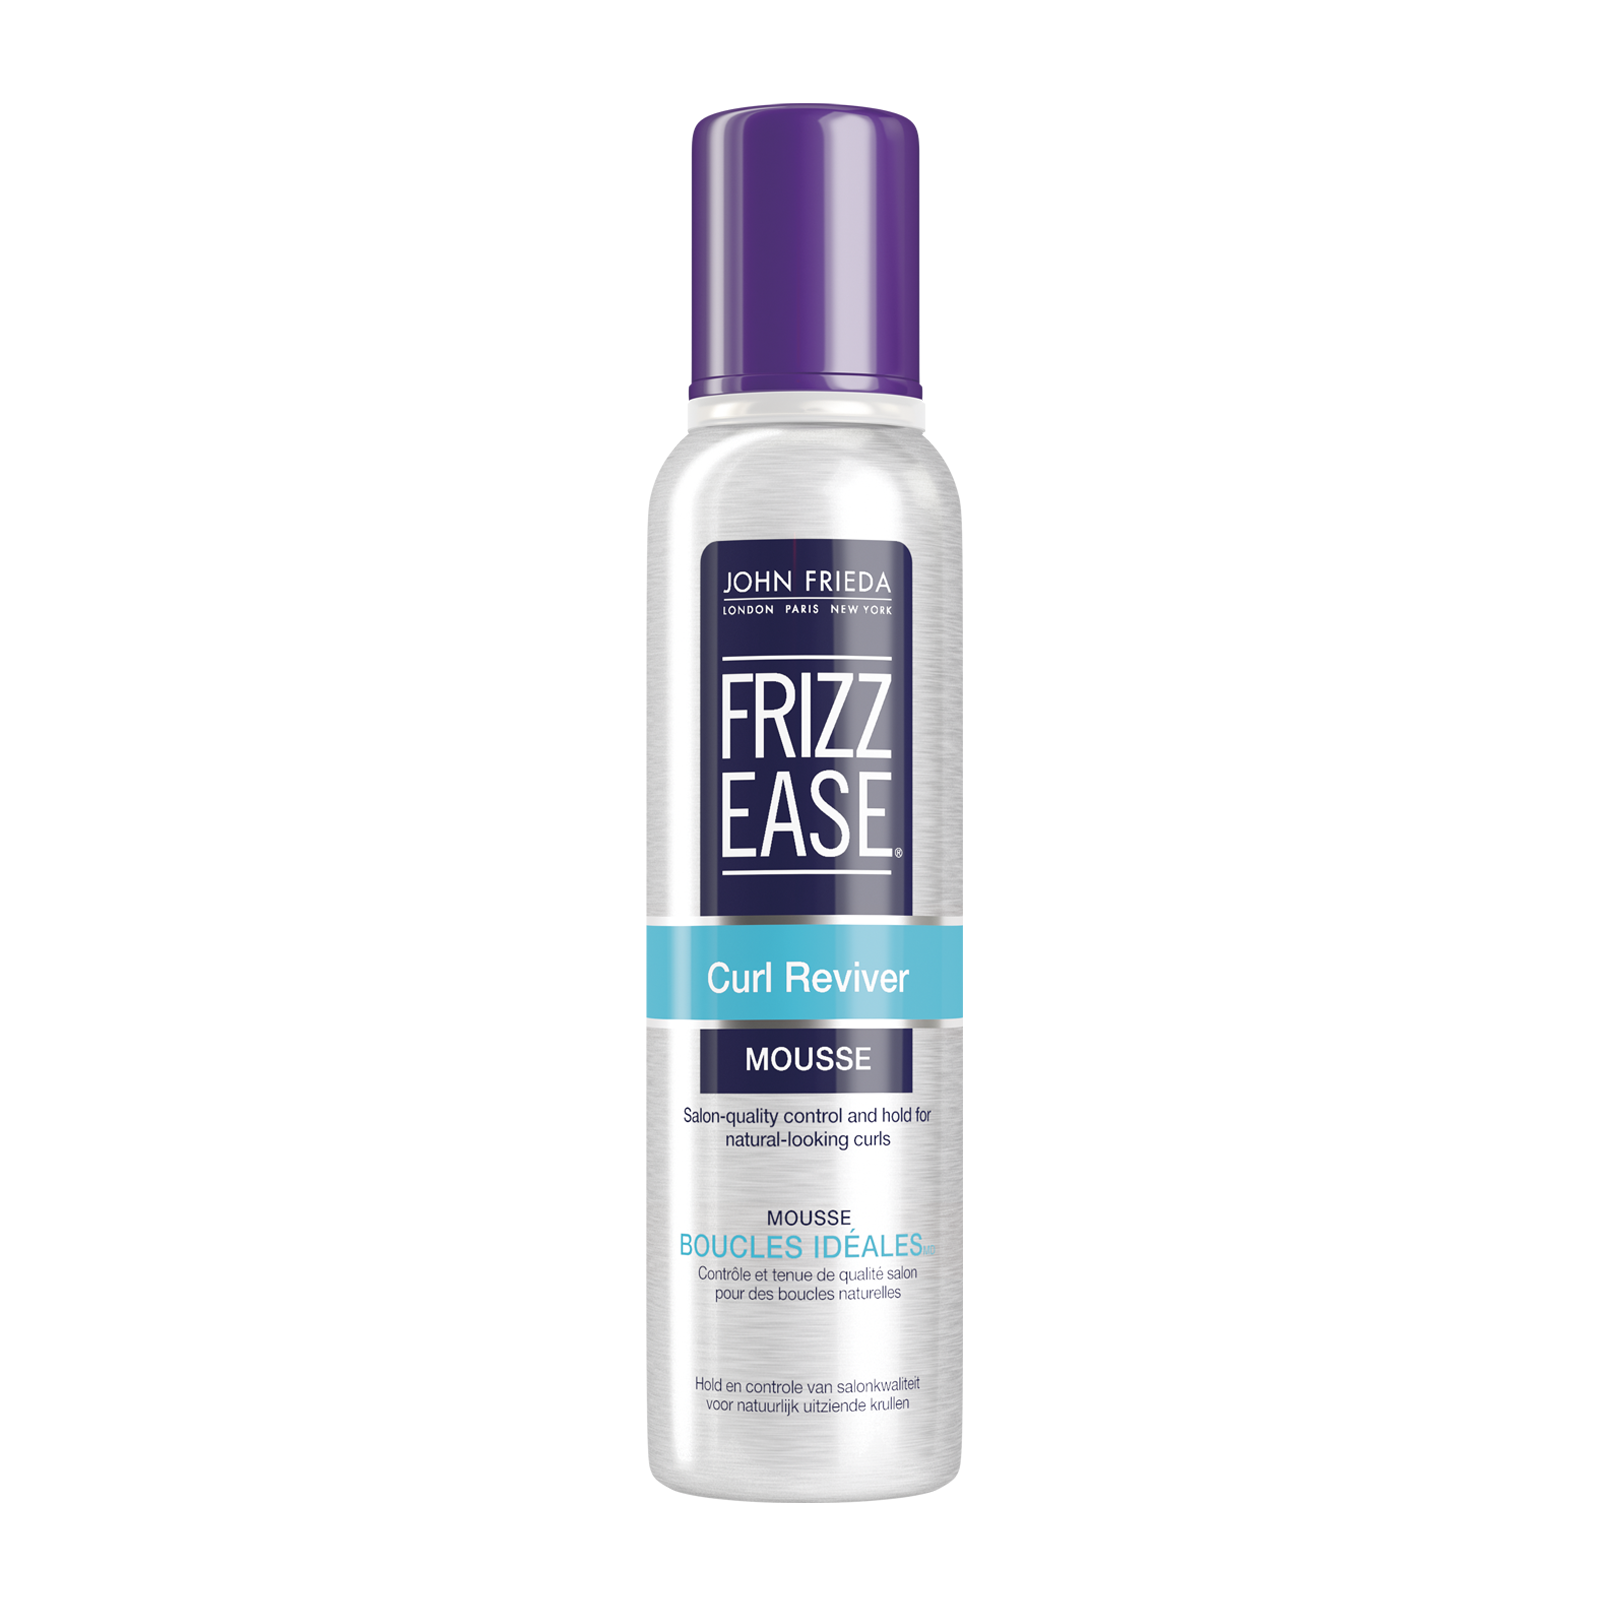 John Frieda Curl Reviver Styling Mousse